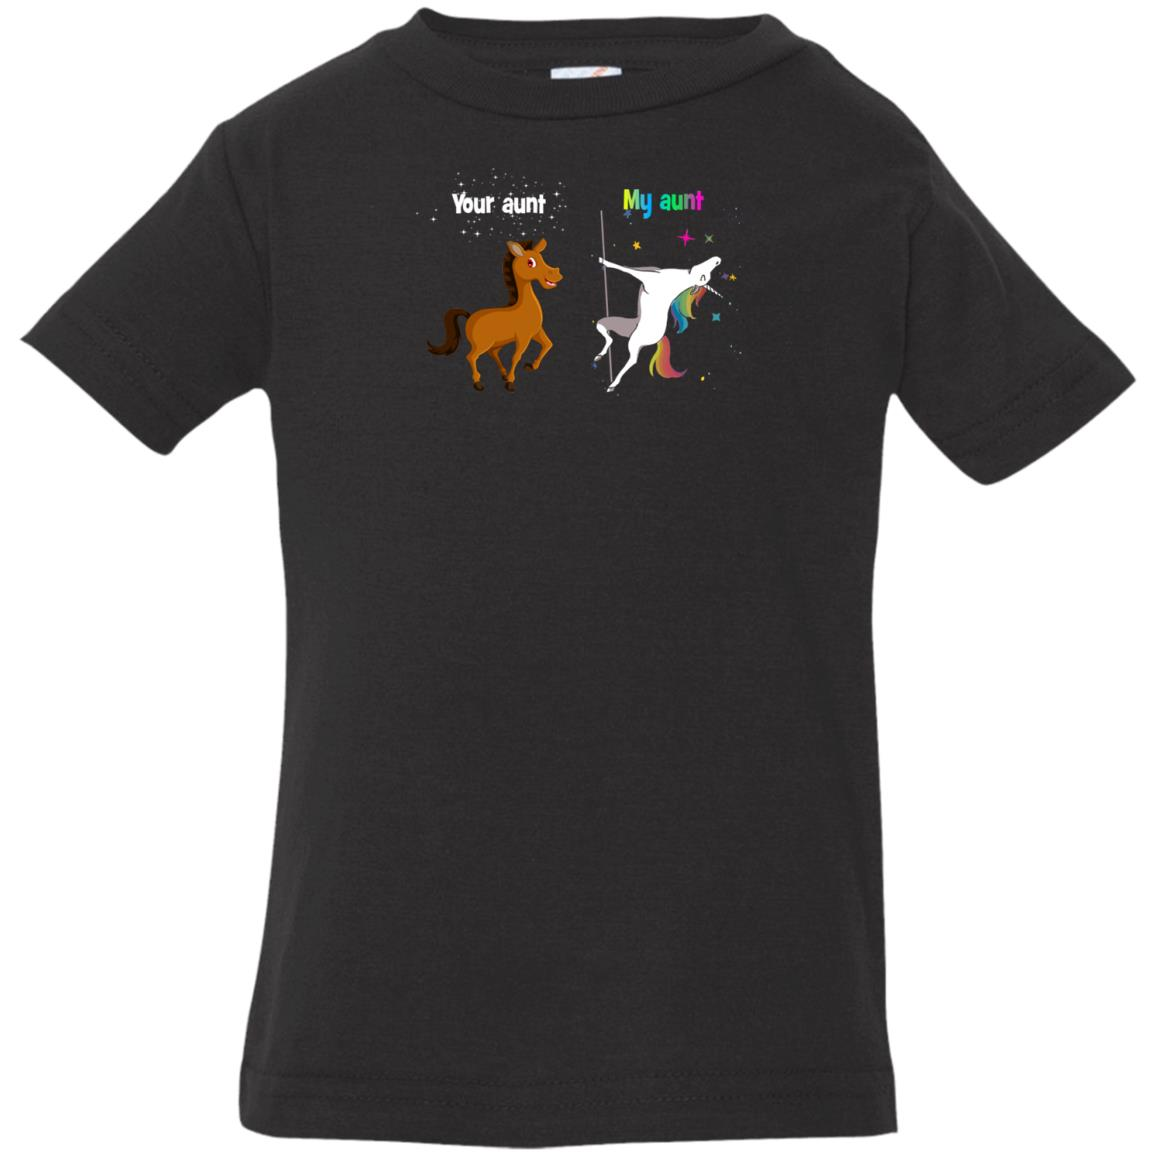 image 957px My aunt unicorn vs your aunt horse youth t shirt